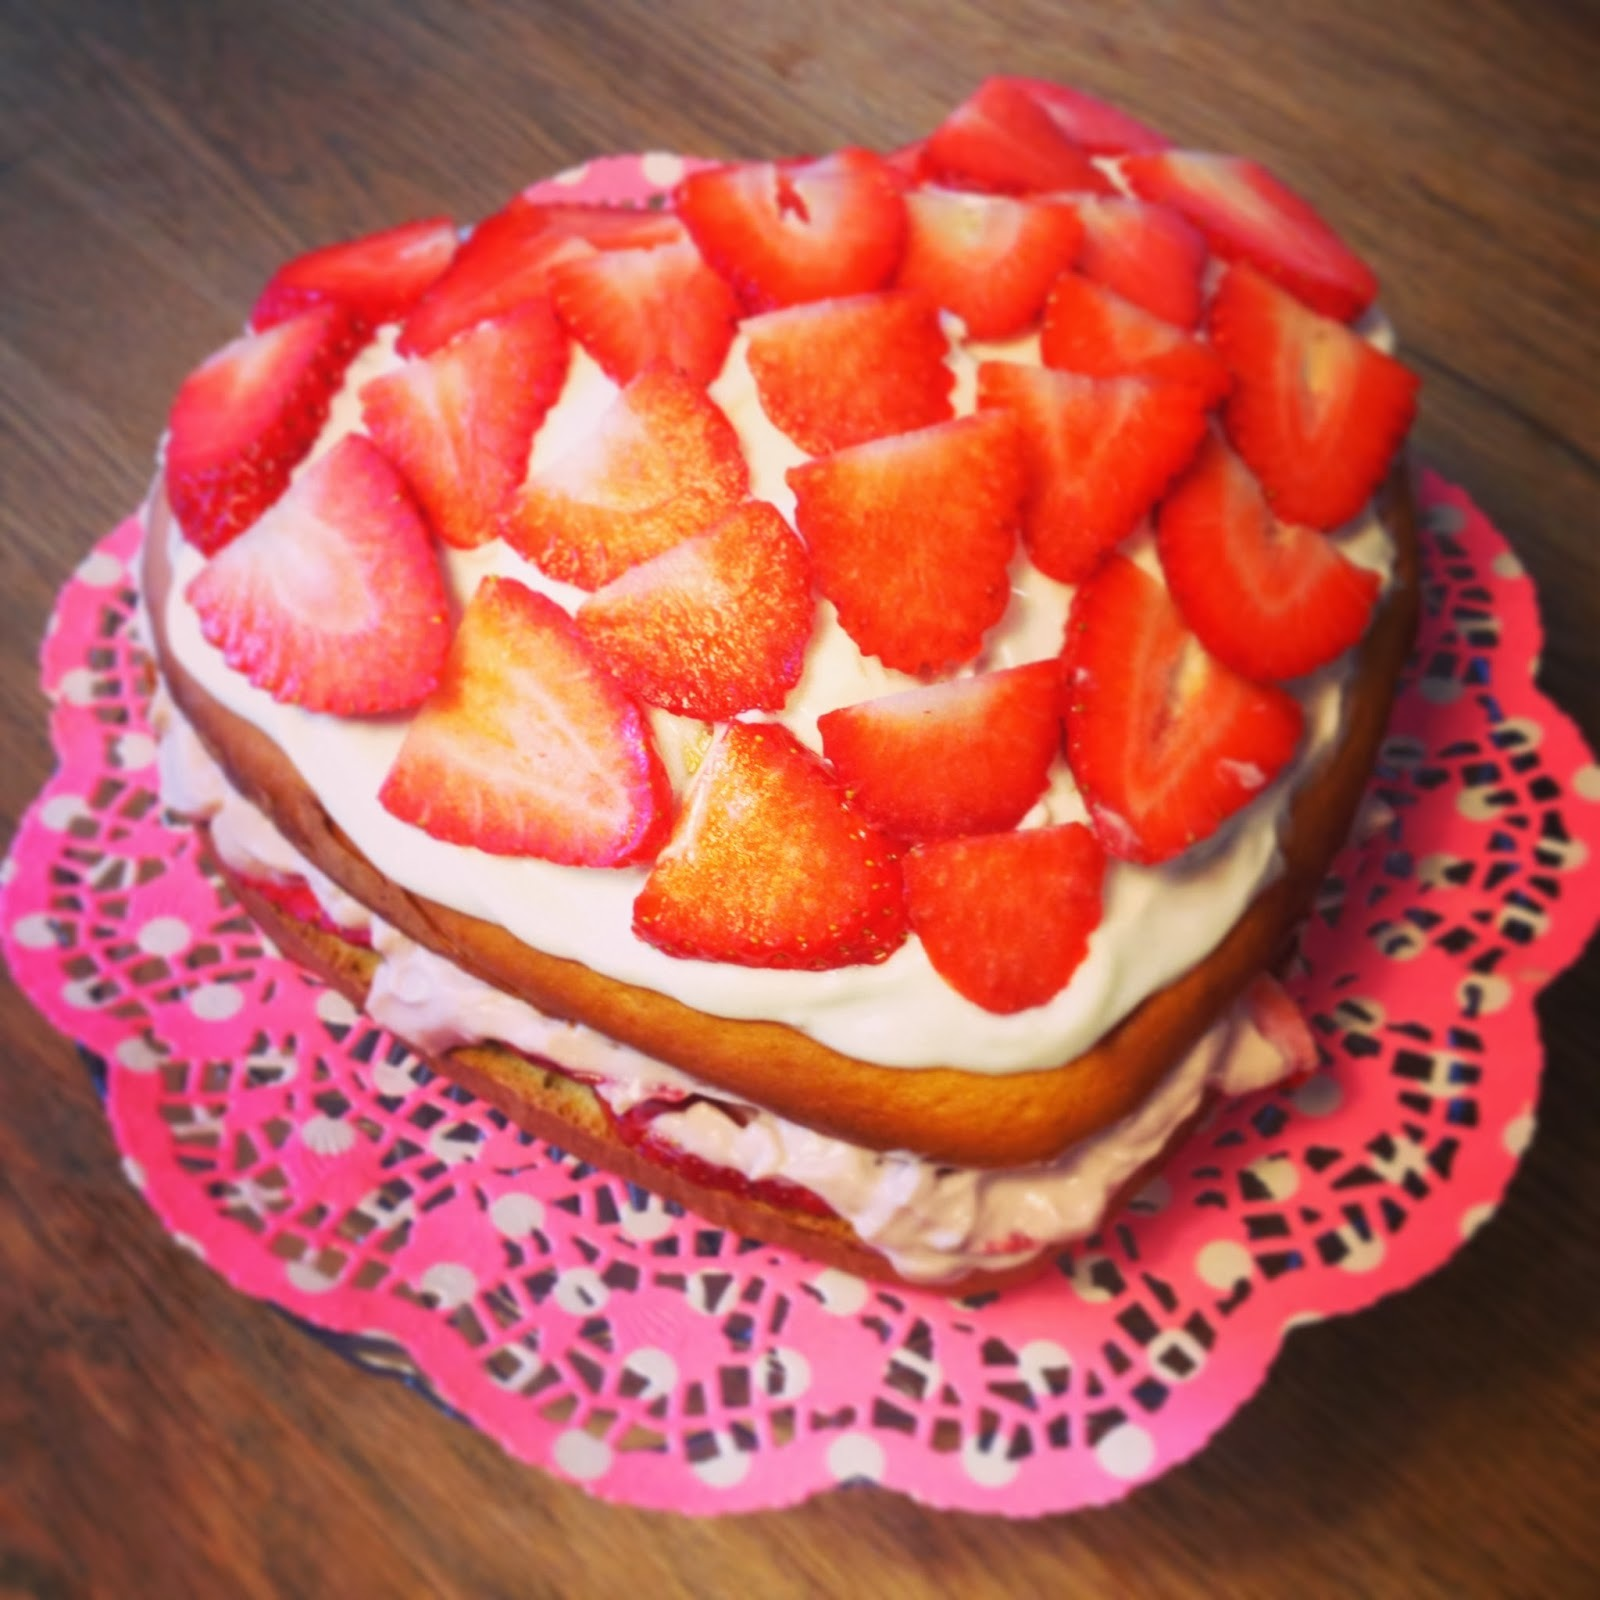 Let them eat cake (strawberry gateaux to be precise)!